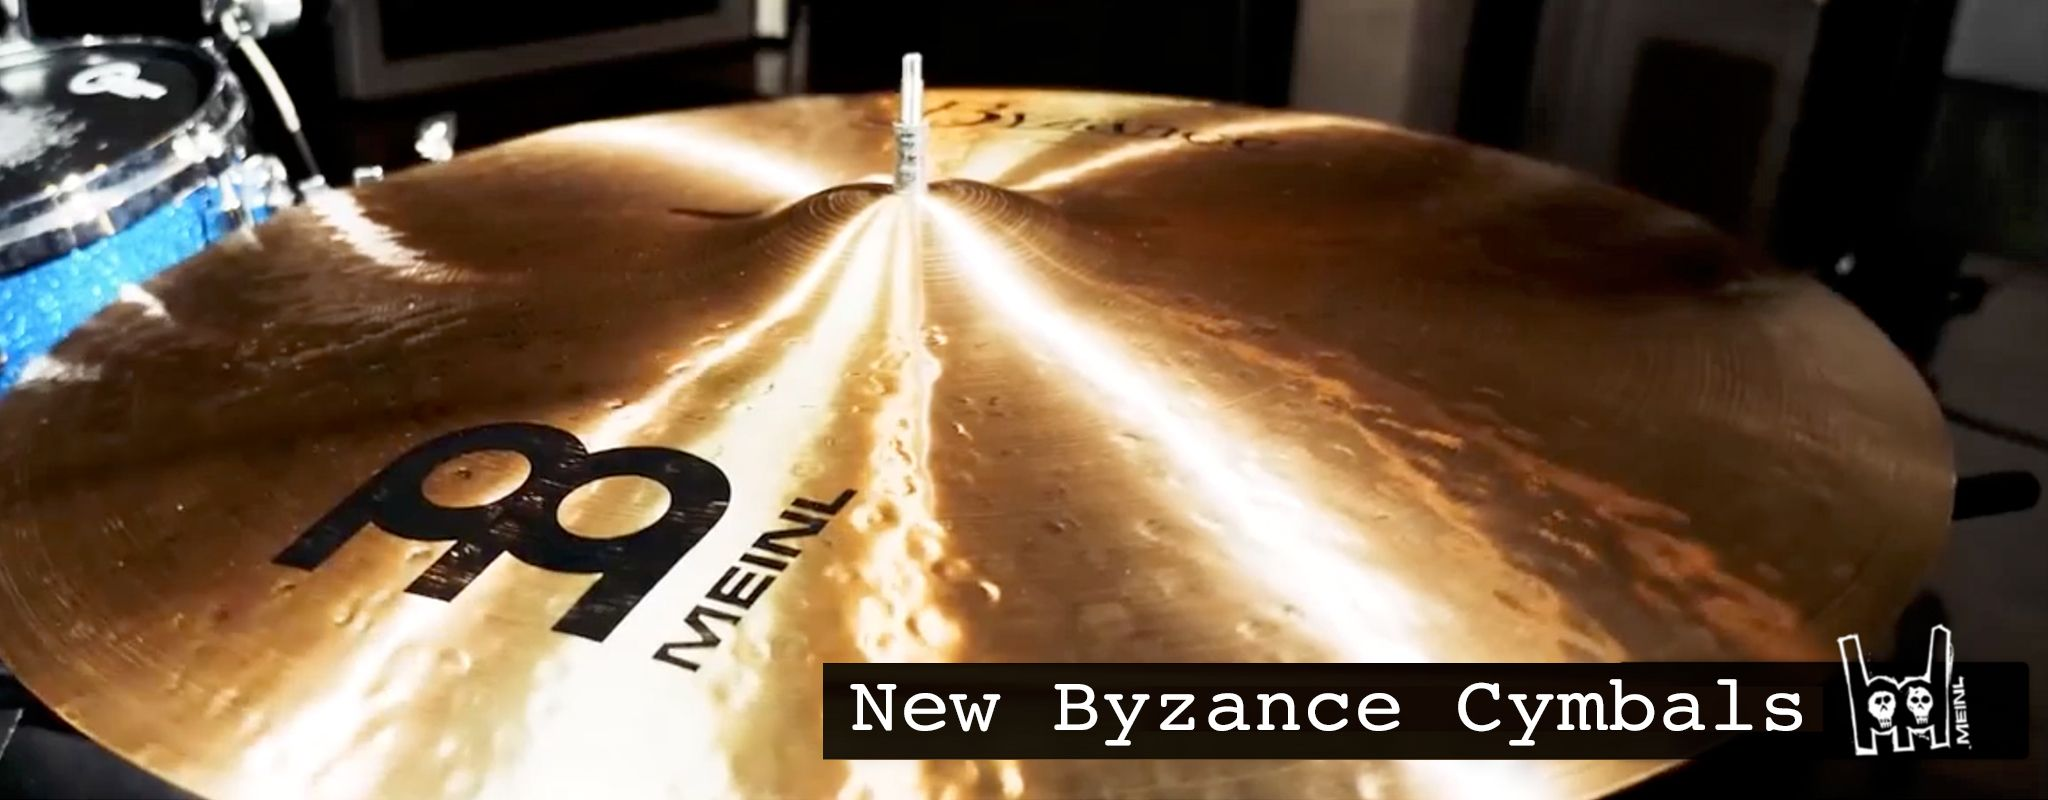 New Byzance Cymbals